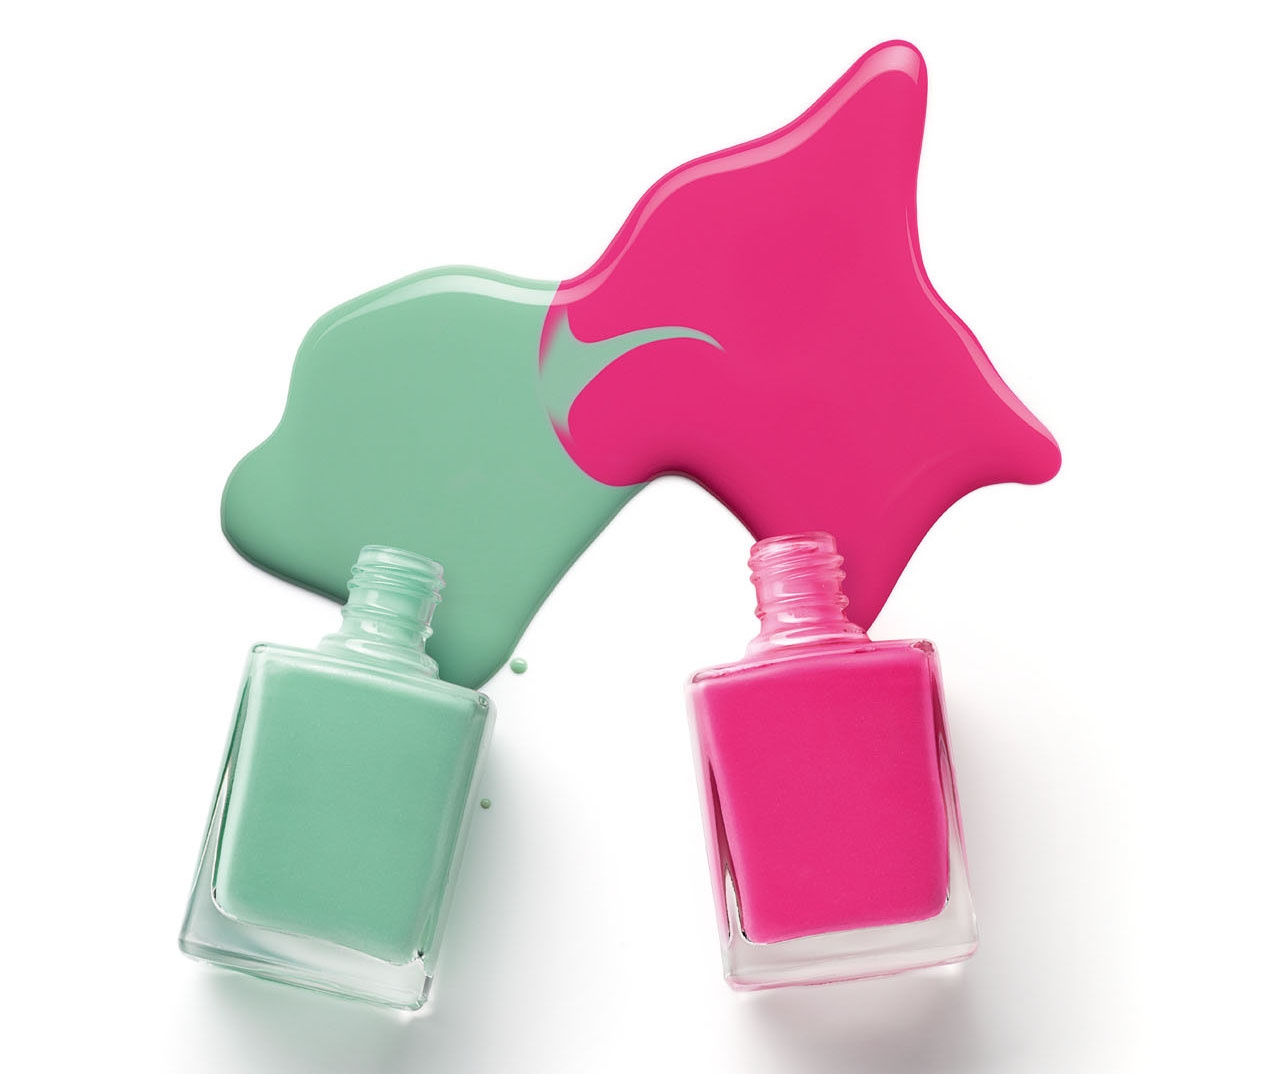 Clipart of the Dripping Nail Polish Bottles free image.